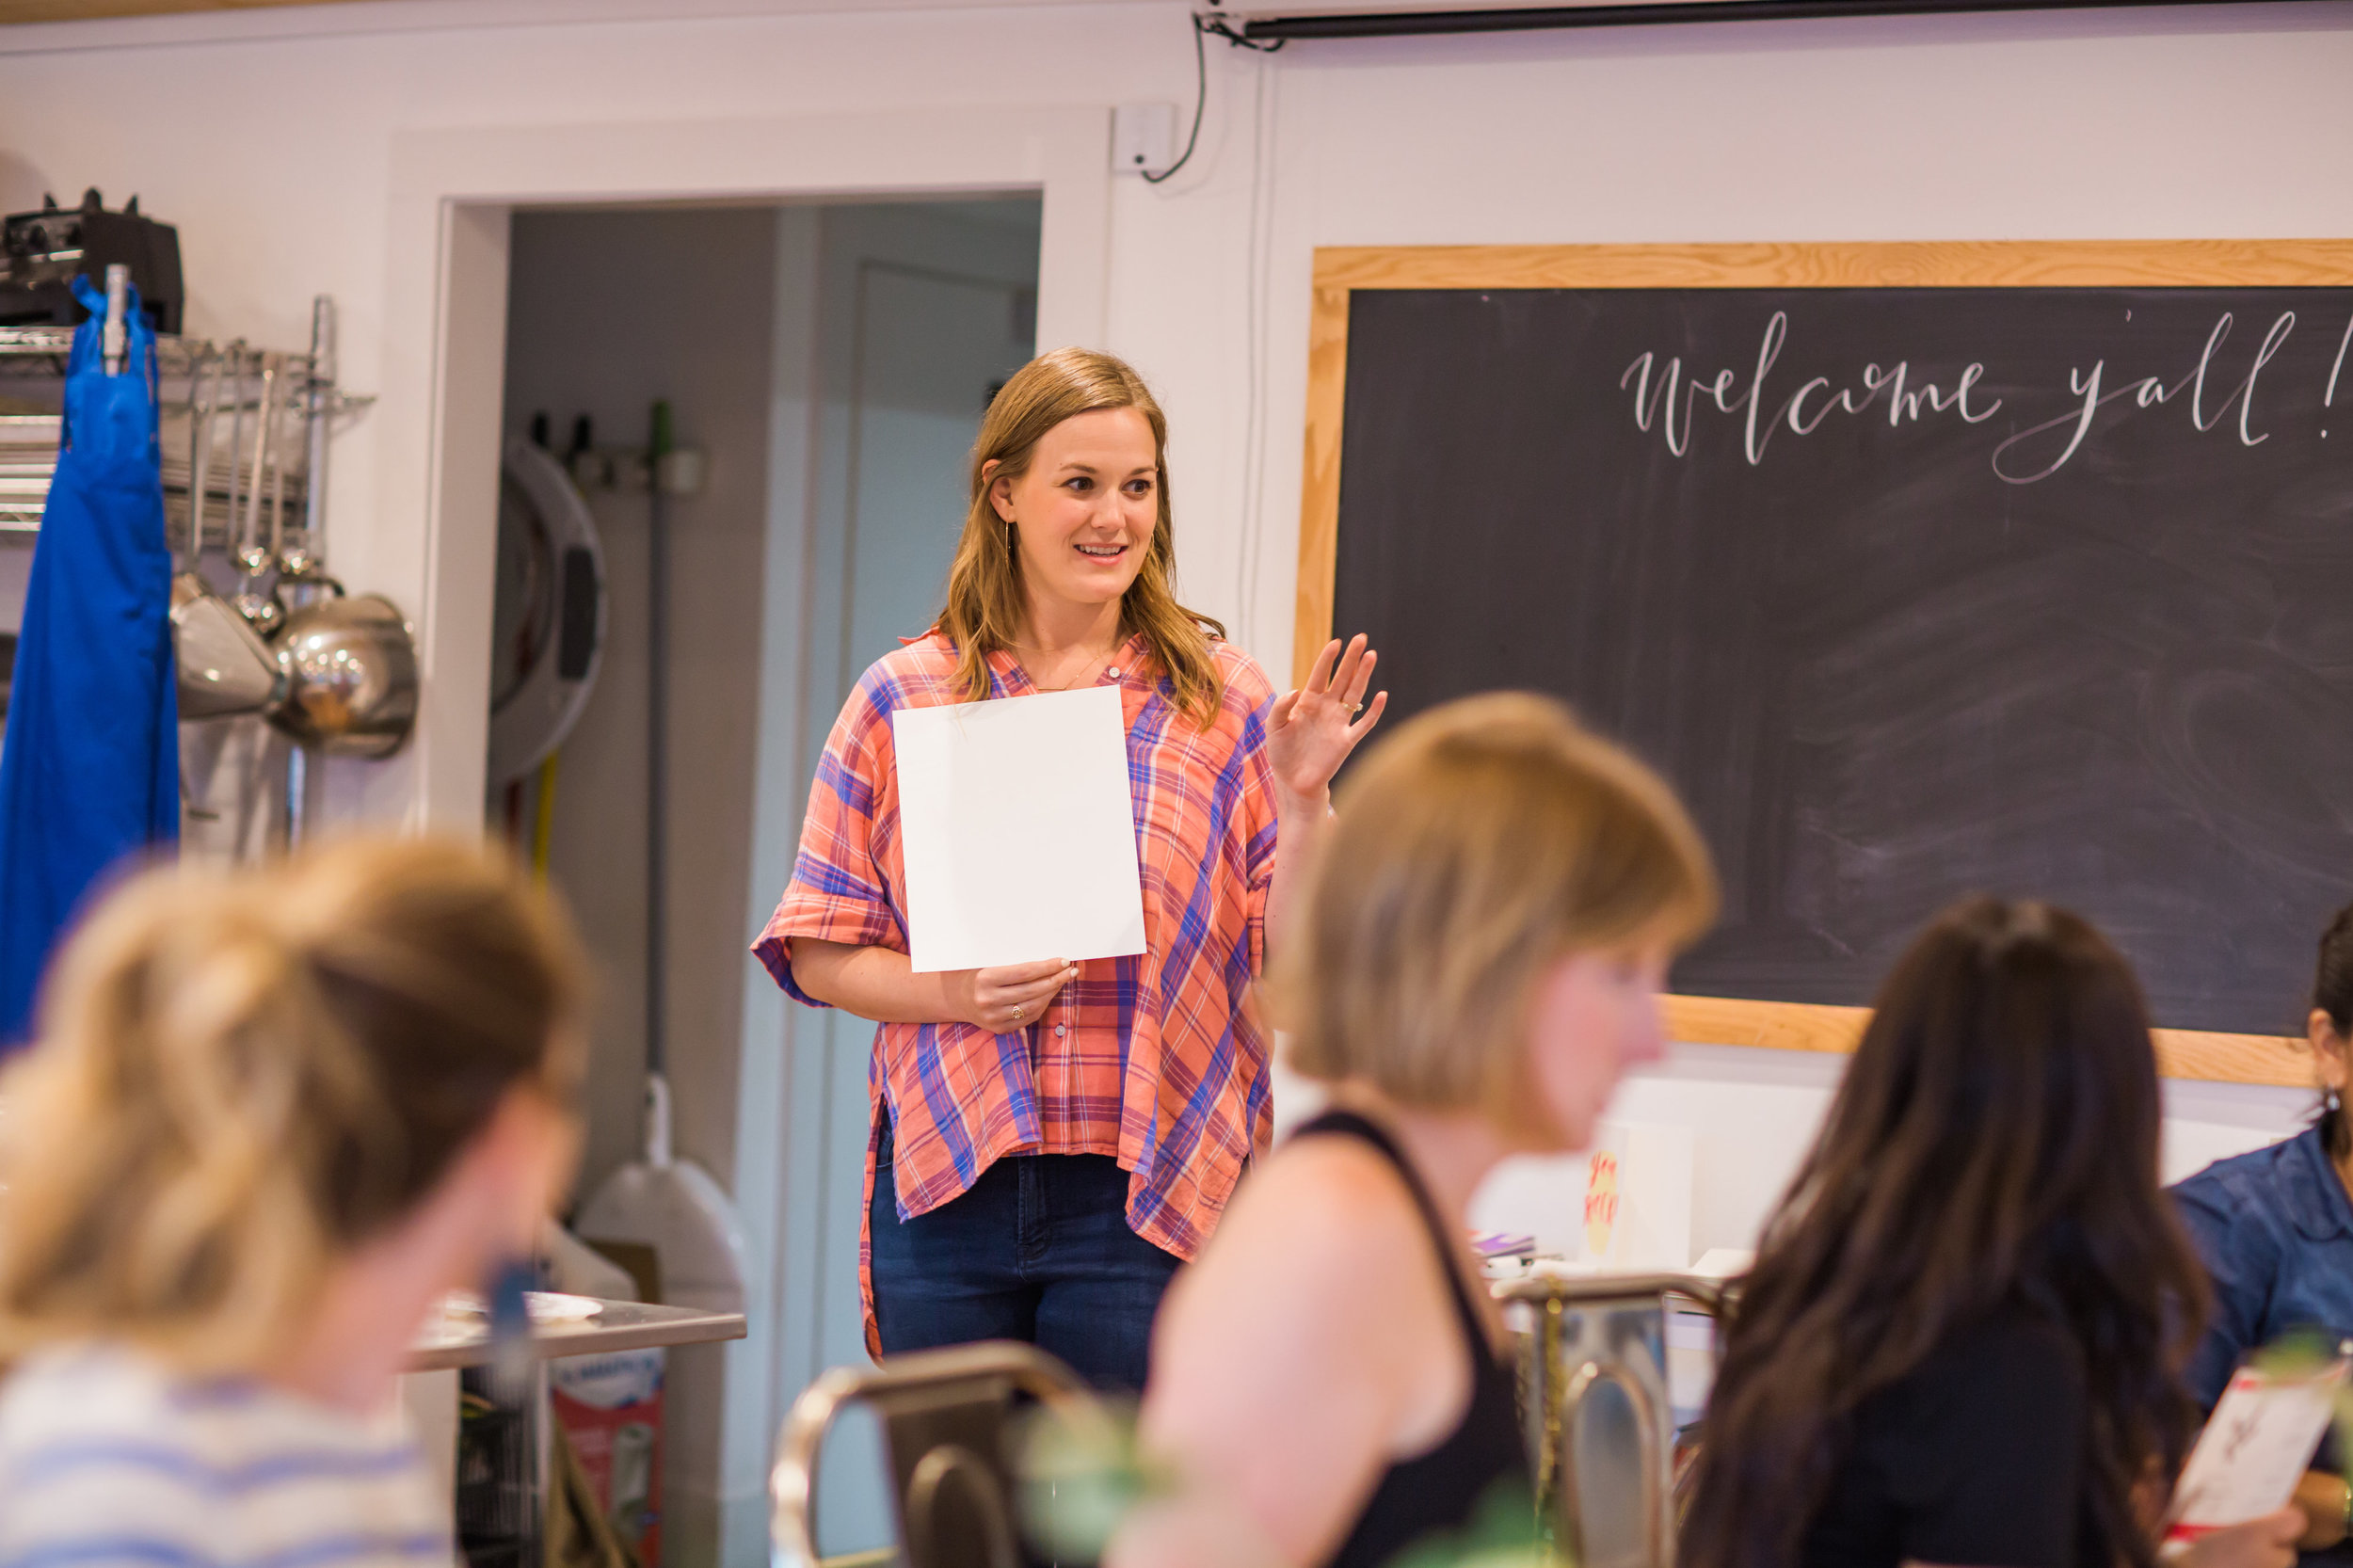 Natalie Coulter introducing brush lettering to guests. Photo credit: Melissa Lewis Photography